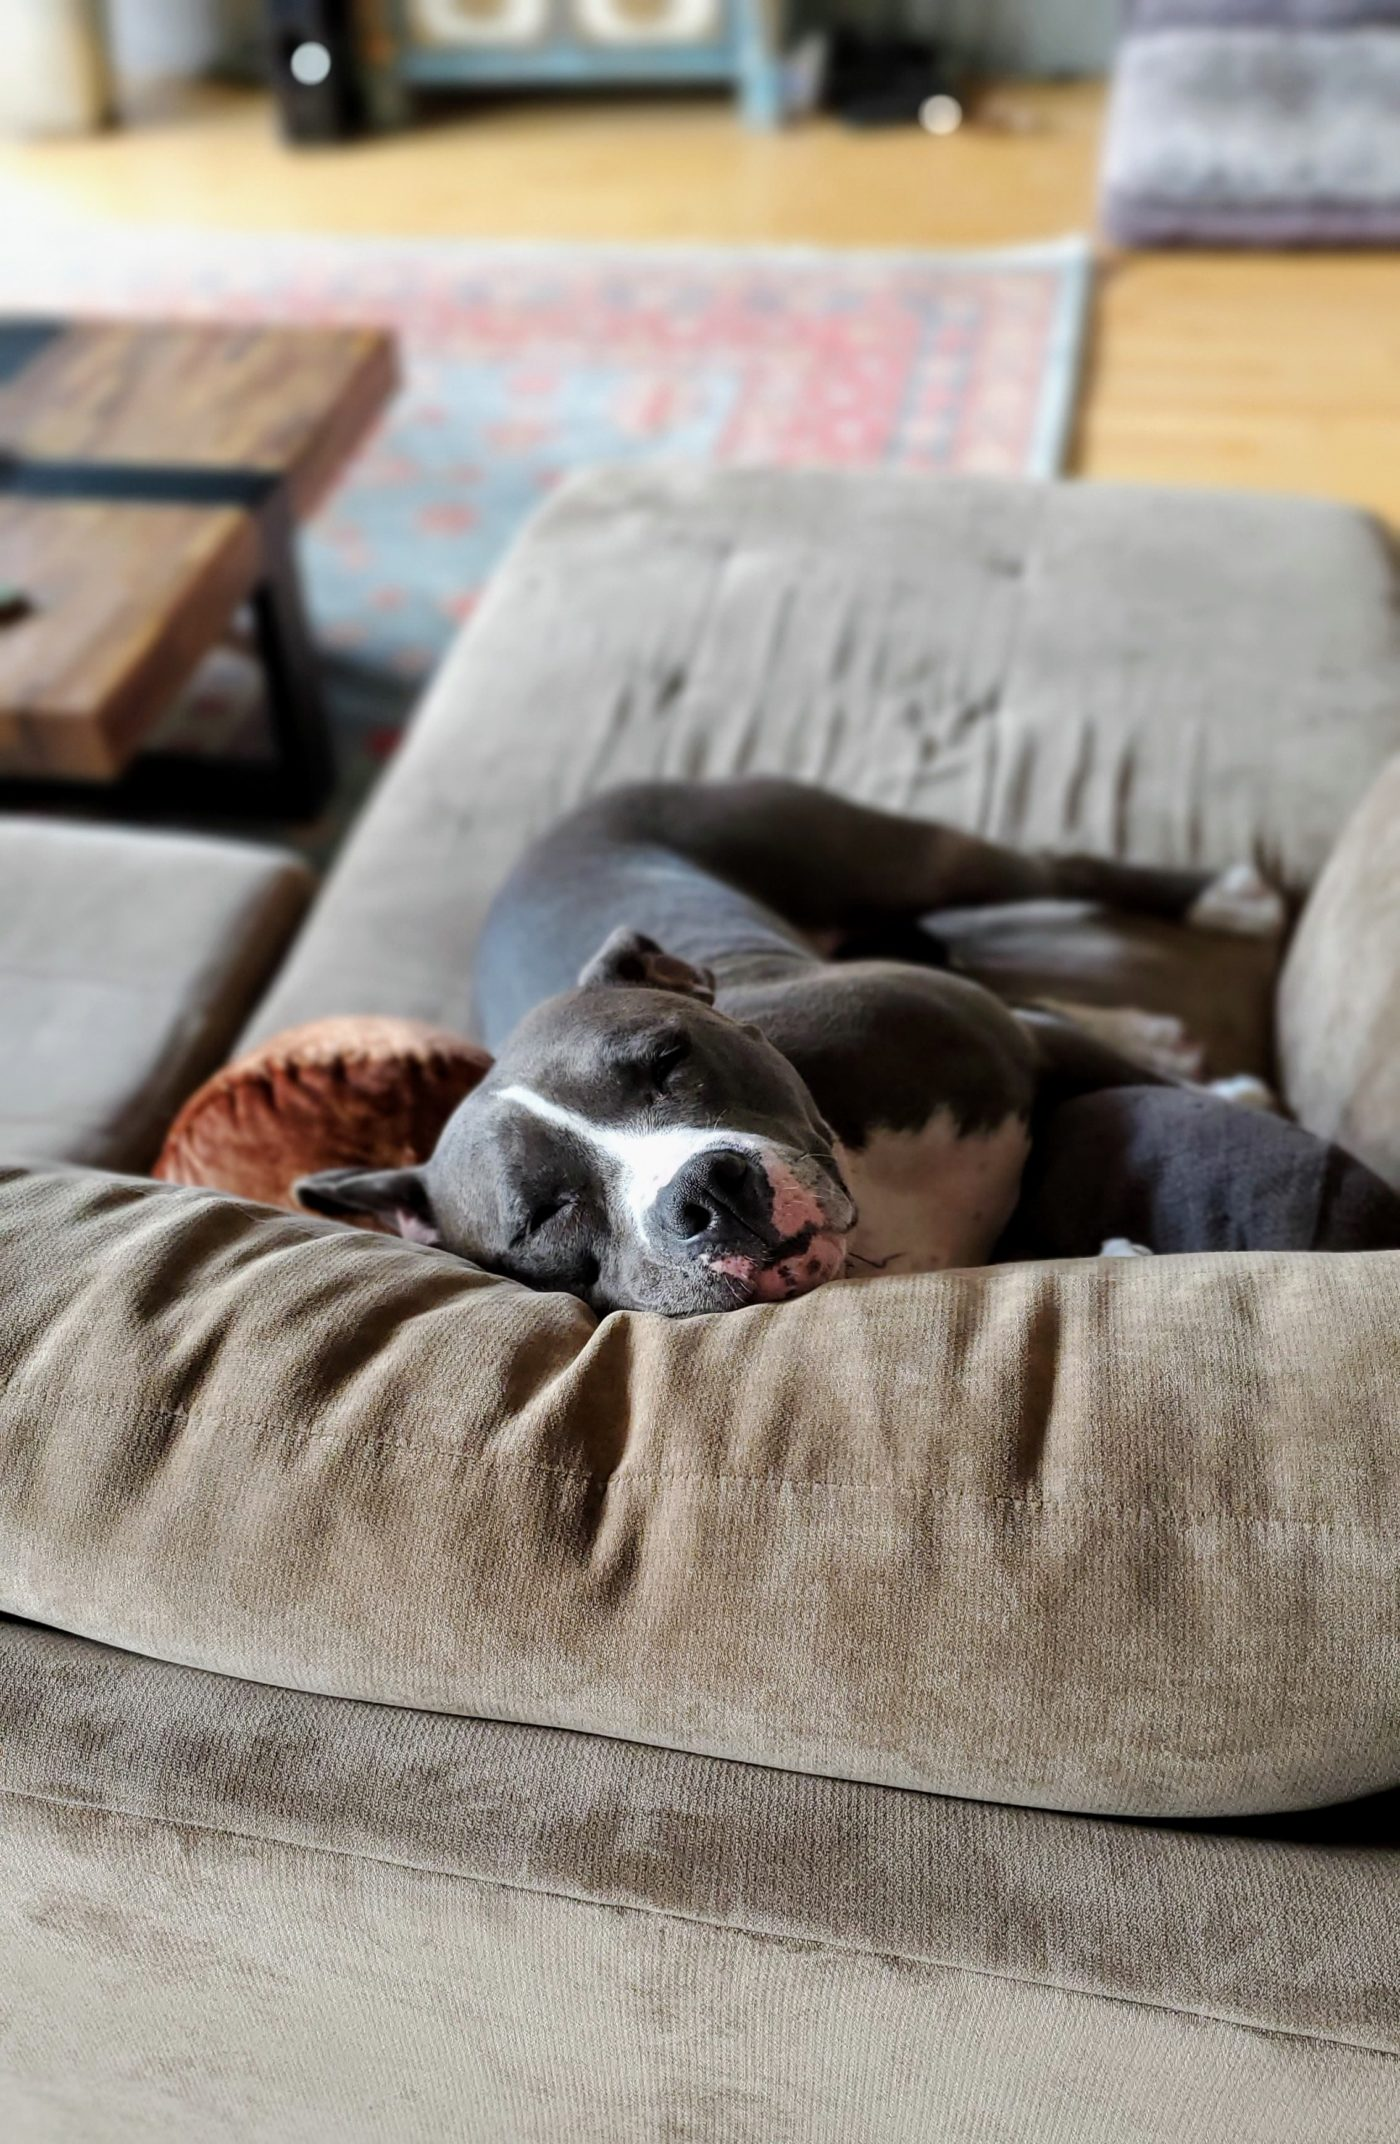 #ilovepitties, #speakdogbarkbusters, #nodogonthecouch, #greenzone